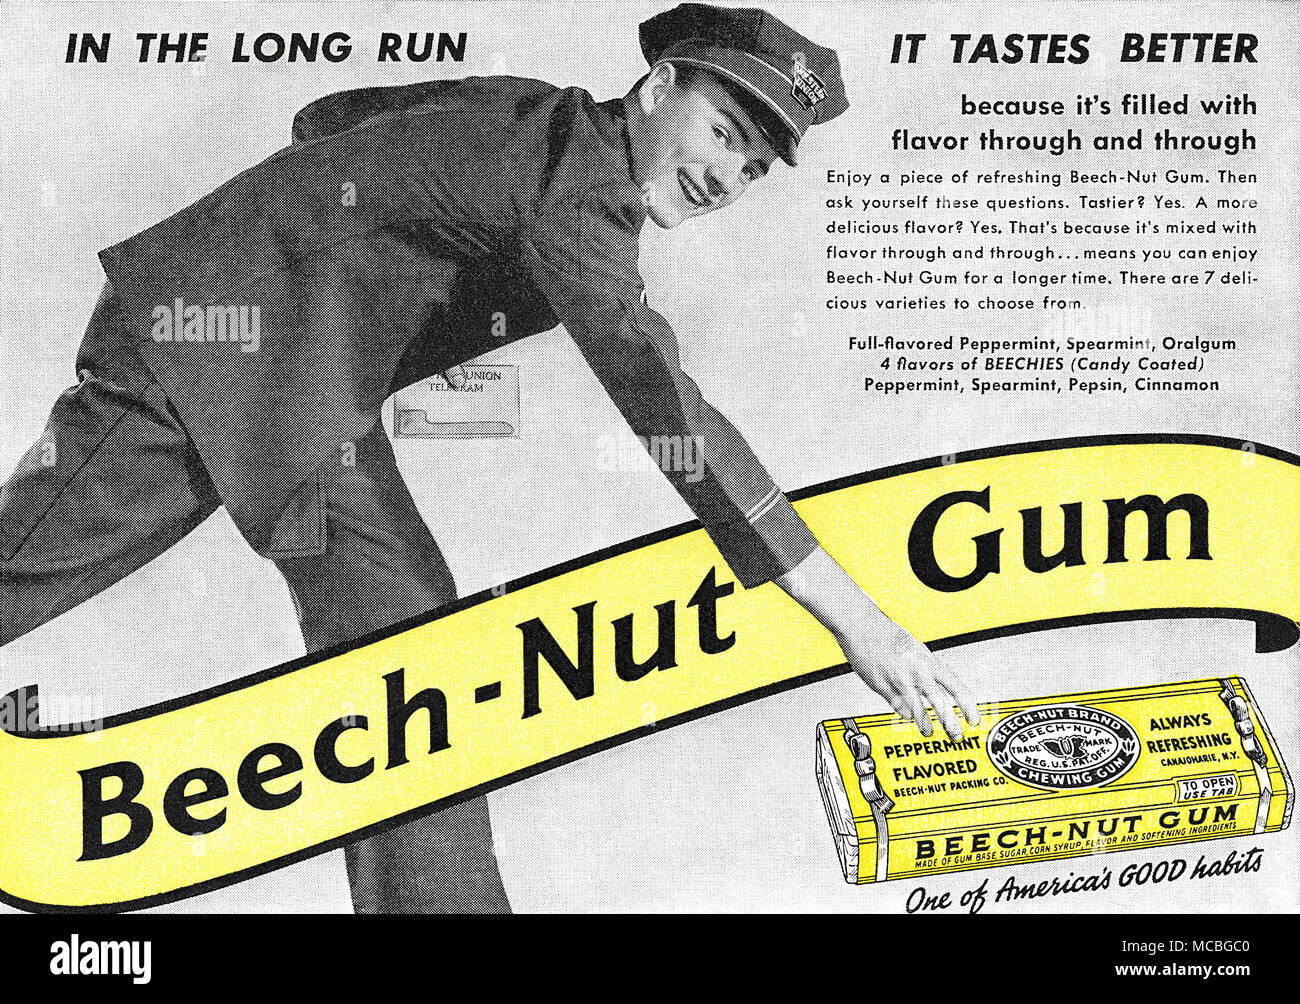 1940 U.S. advertisement for Beech-Nut chewing gum. - Stock Image